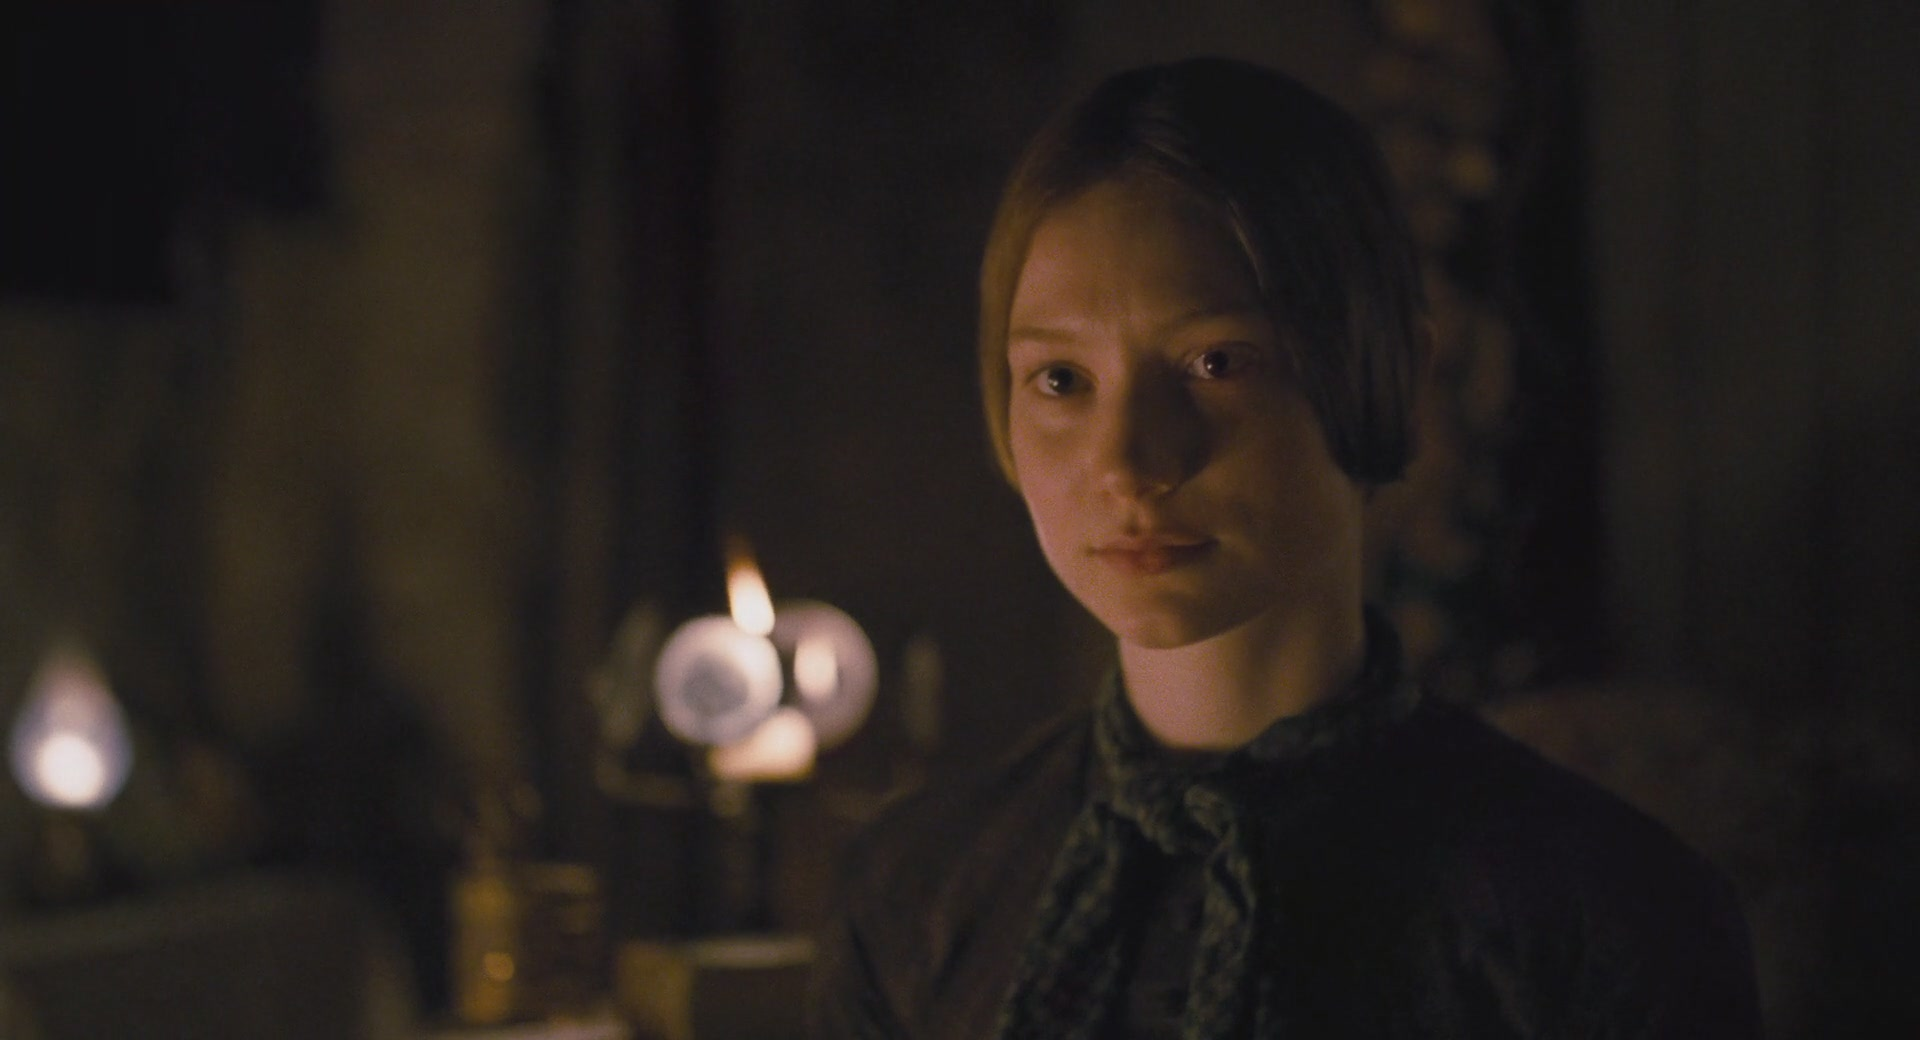 jane eyre 2009 trailer A video about author the jane eyre read the book, see the movie challenge - 8688 views - 106 people liked it jane eyre movie trailer.